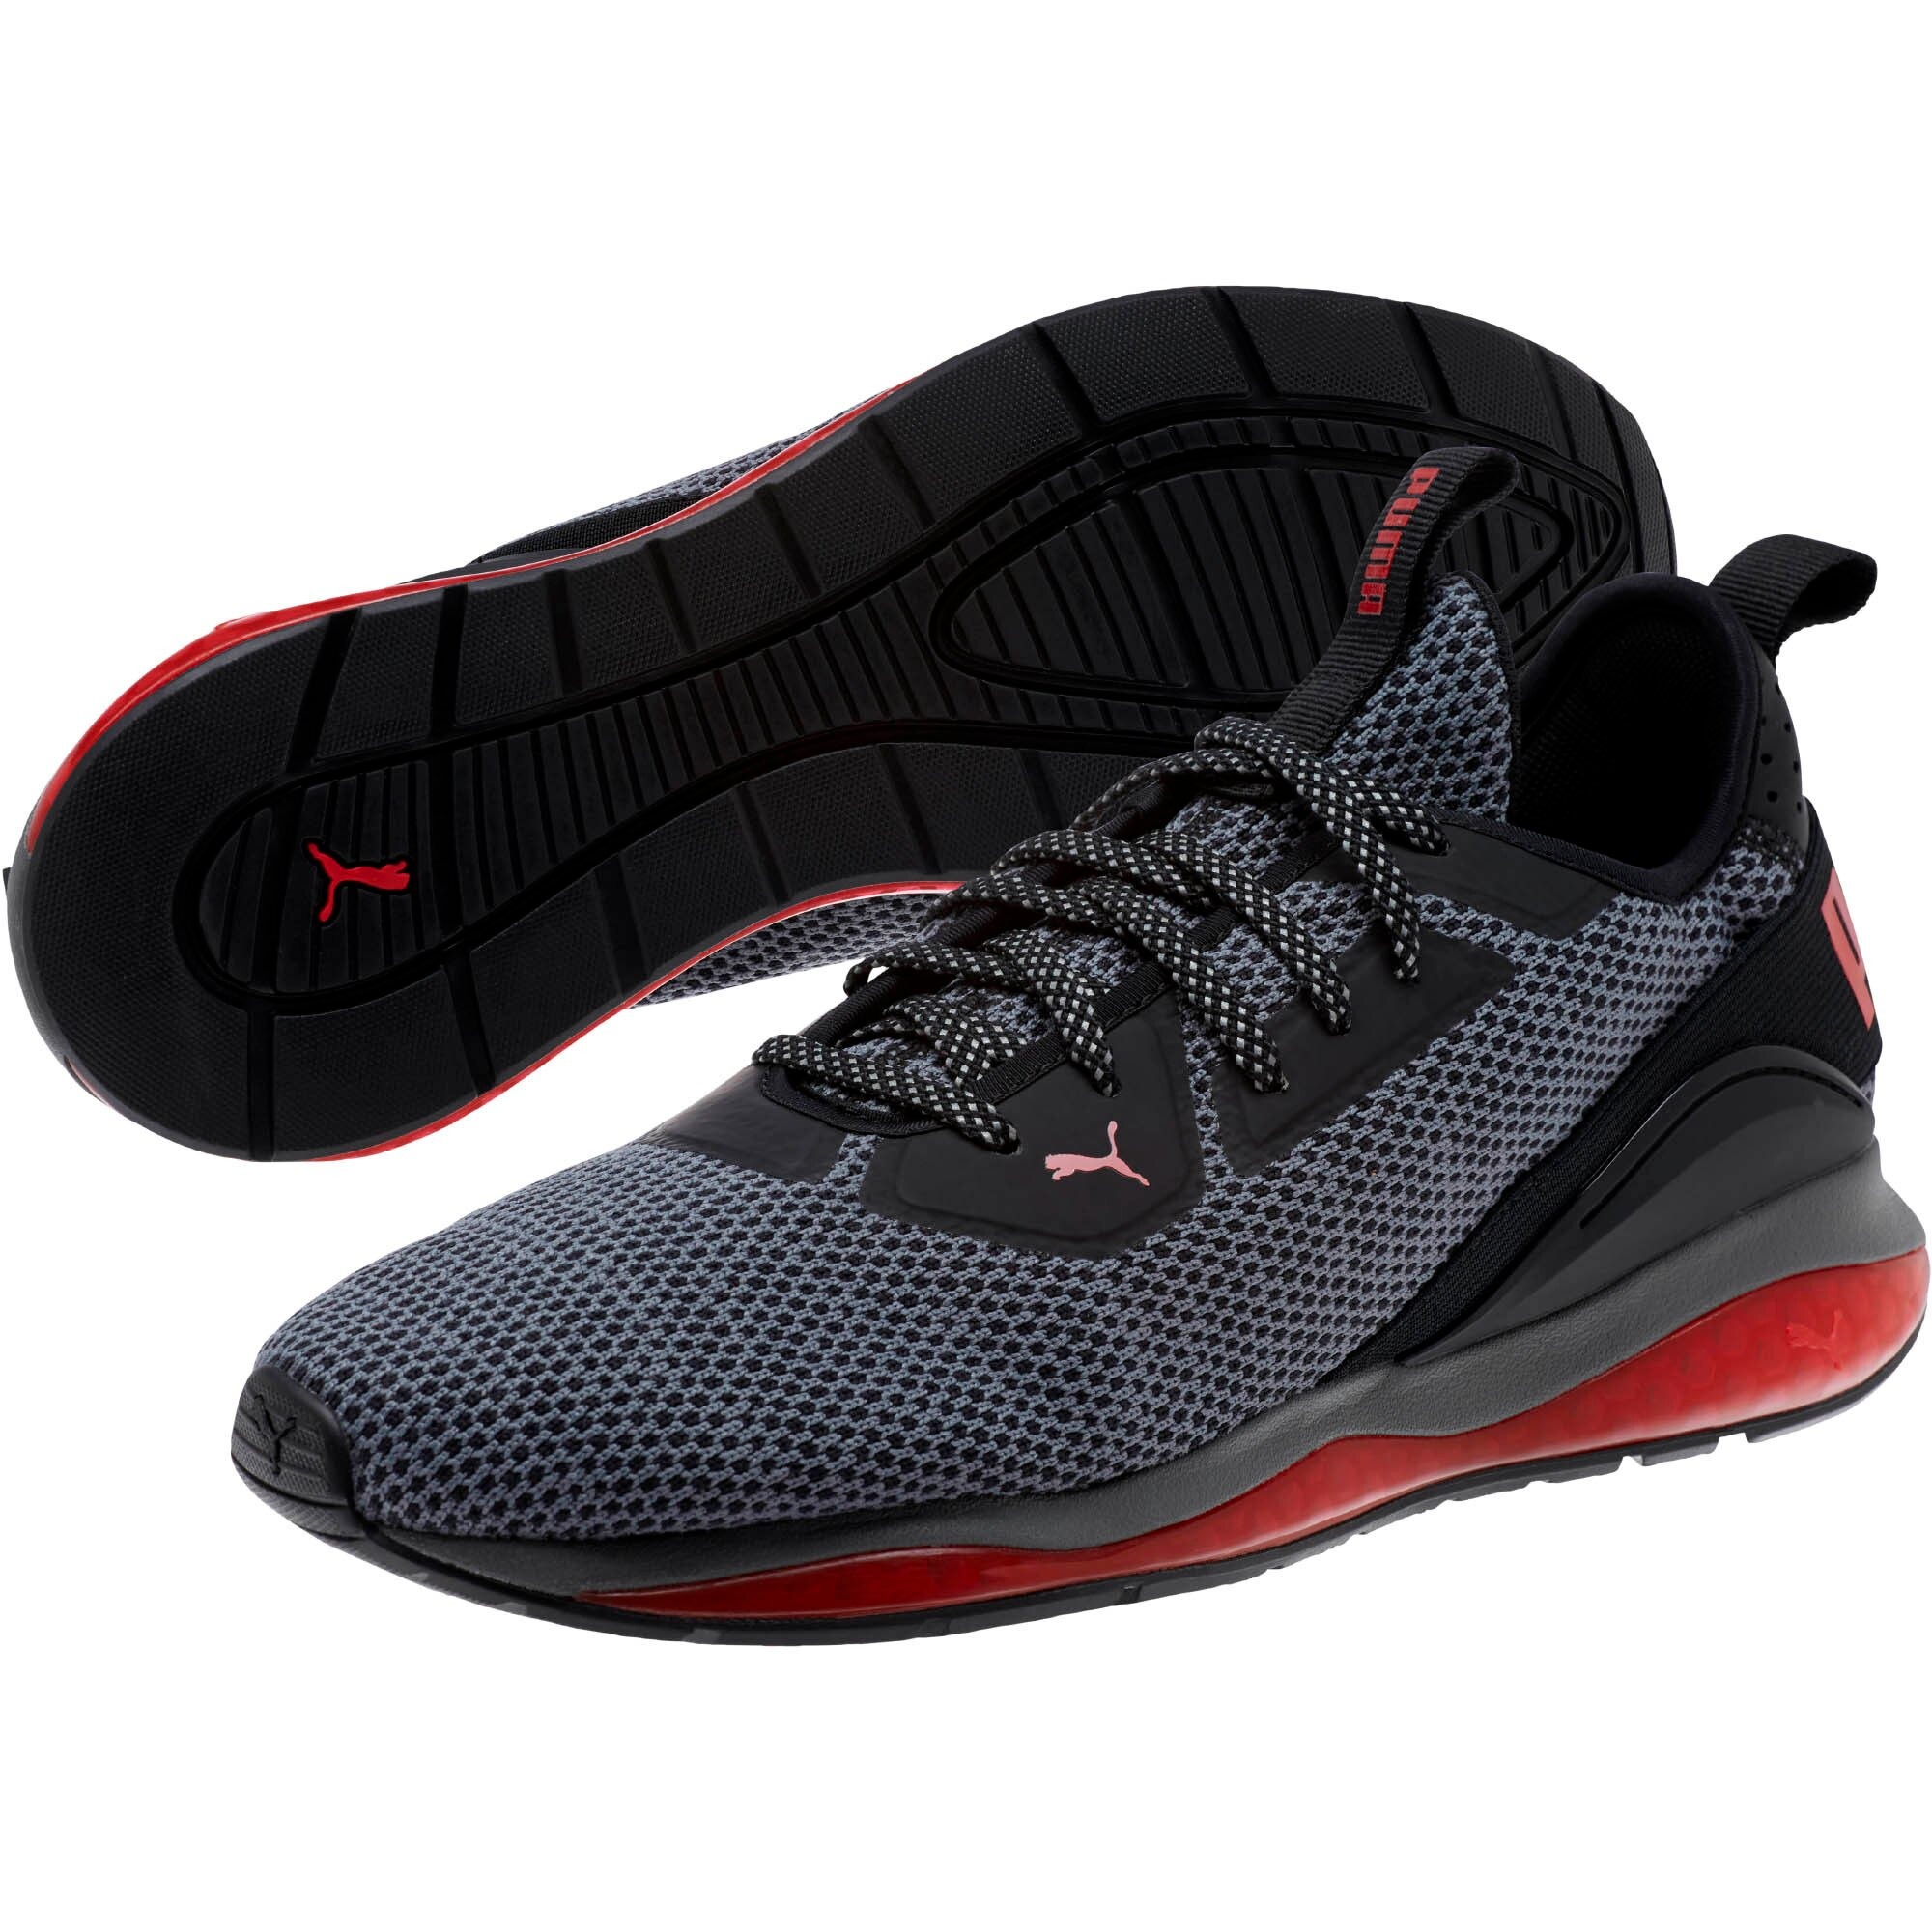 Official Puma Store  PUMA Cell Descend Men s Running Shoes  831d07ddd